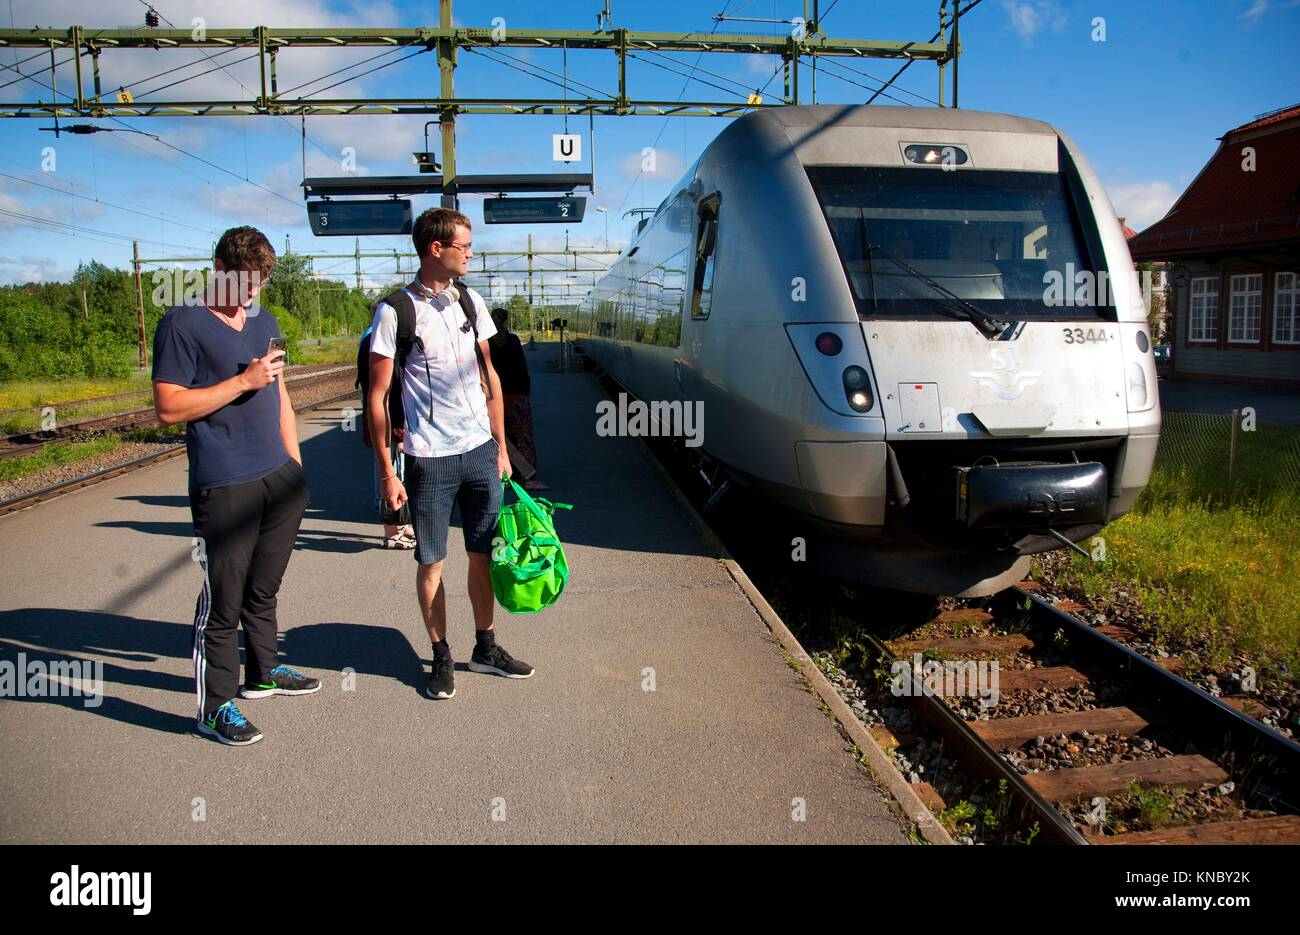 Man leaving on train, countryside of northern Sweden. - Stock Image